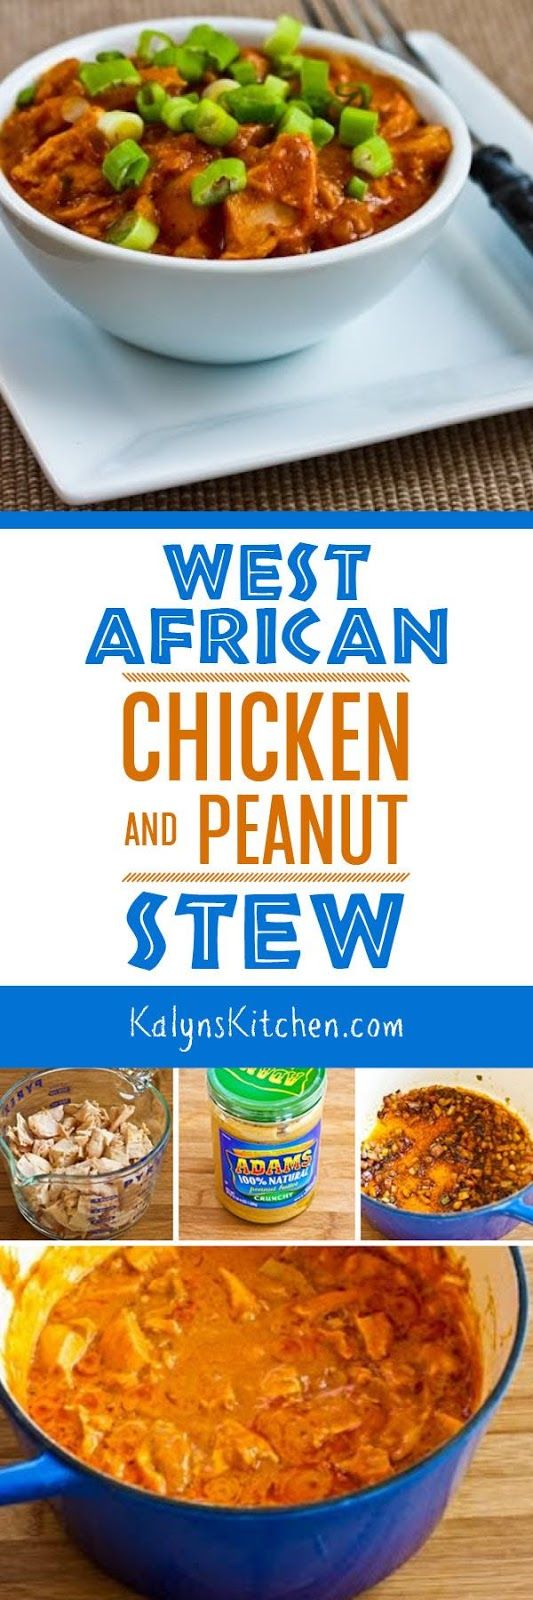 West African Chicken and Peanut Stew with Chiles, Ginger, and Green Onions is a delicious dish that starts with leftover chicken and it's low-carb, gluten-free, and dairy-free! [found on KalynsKitchen.com]